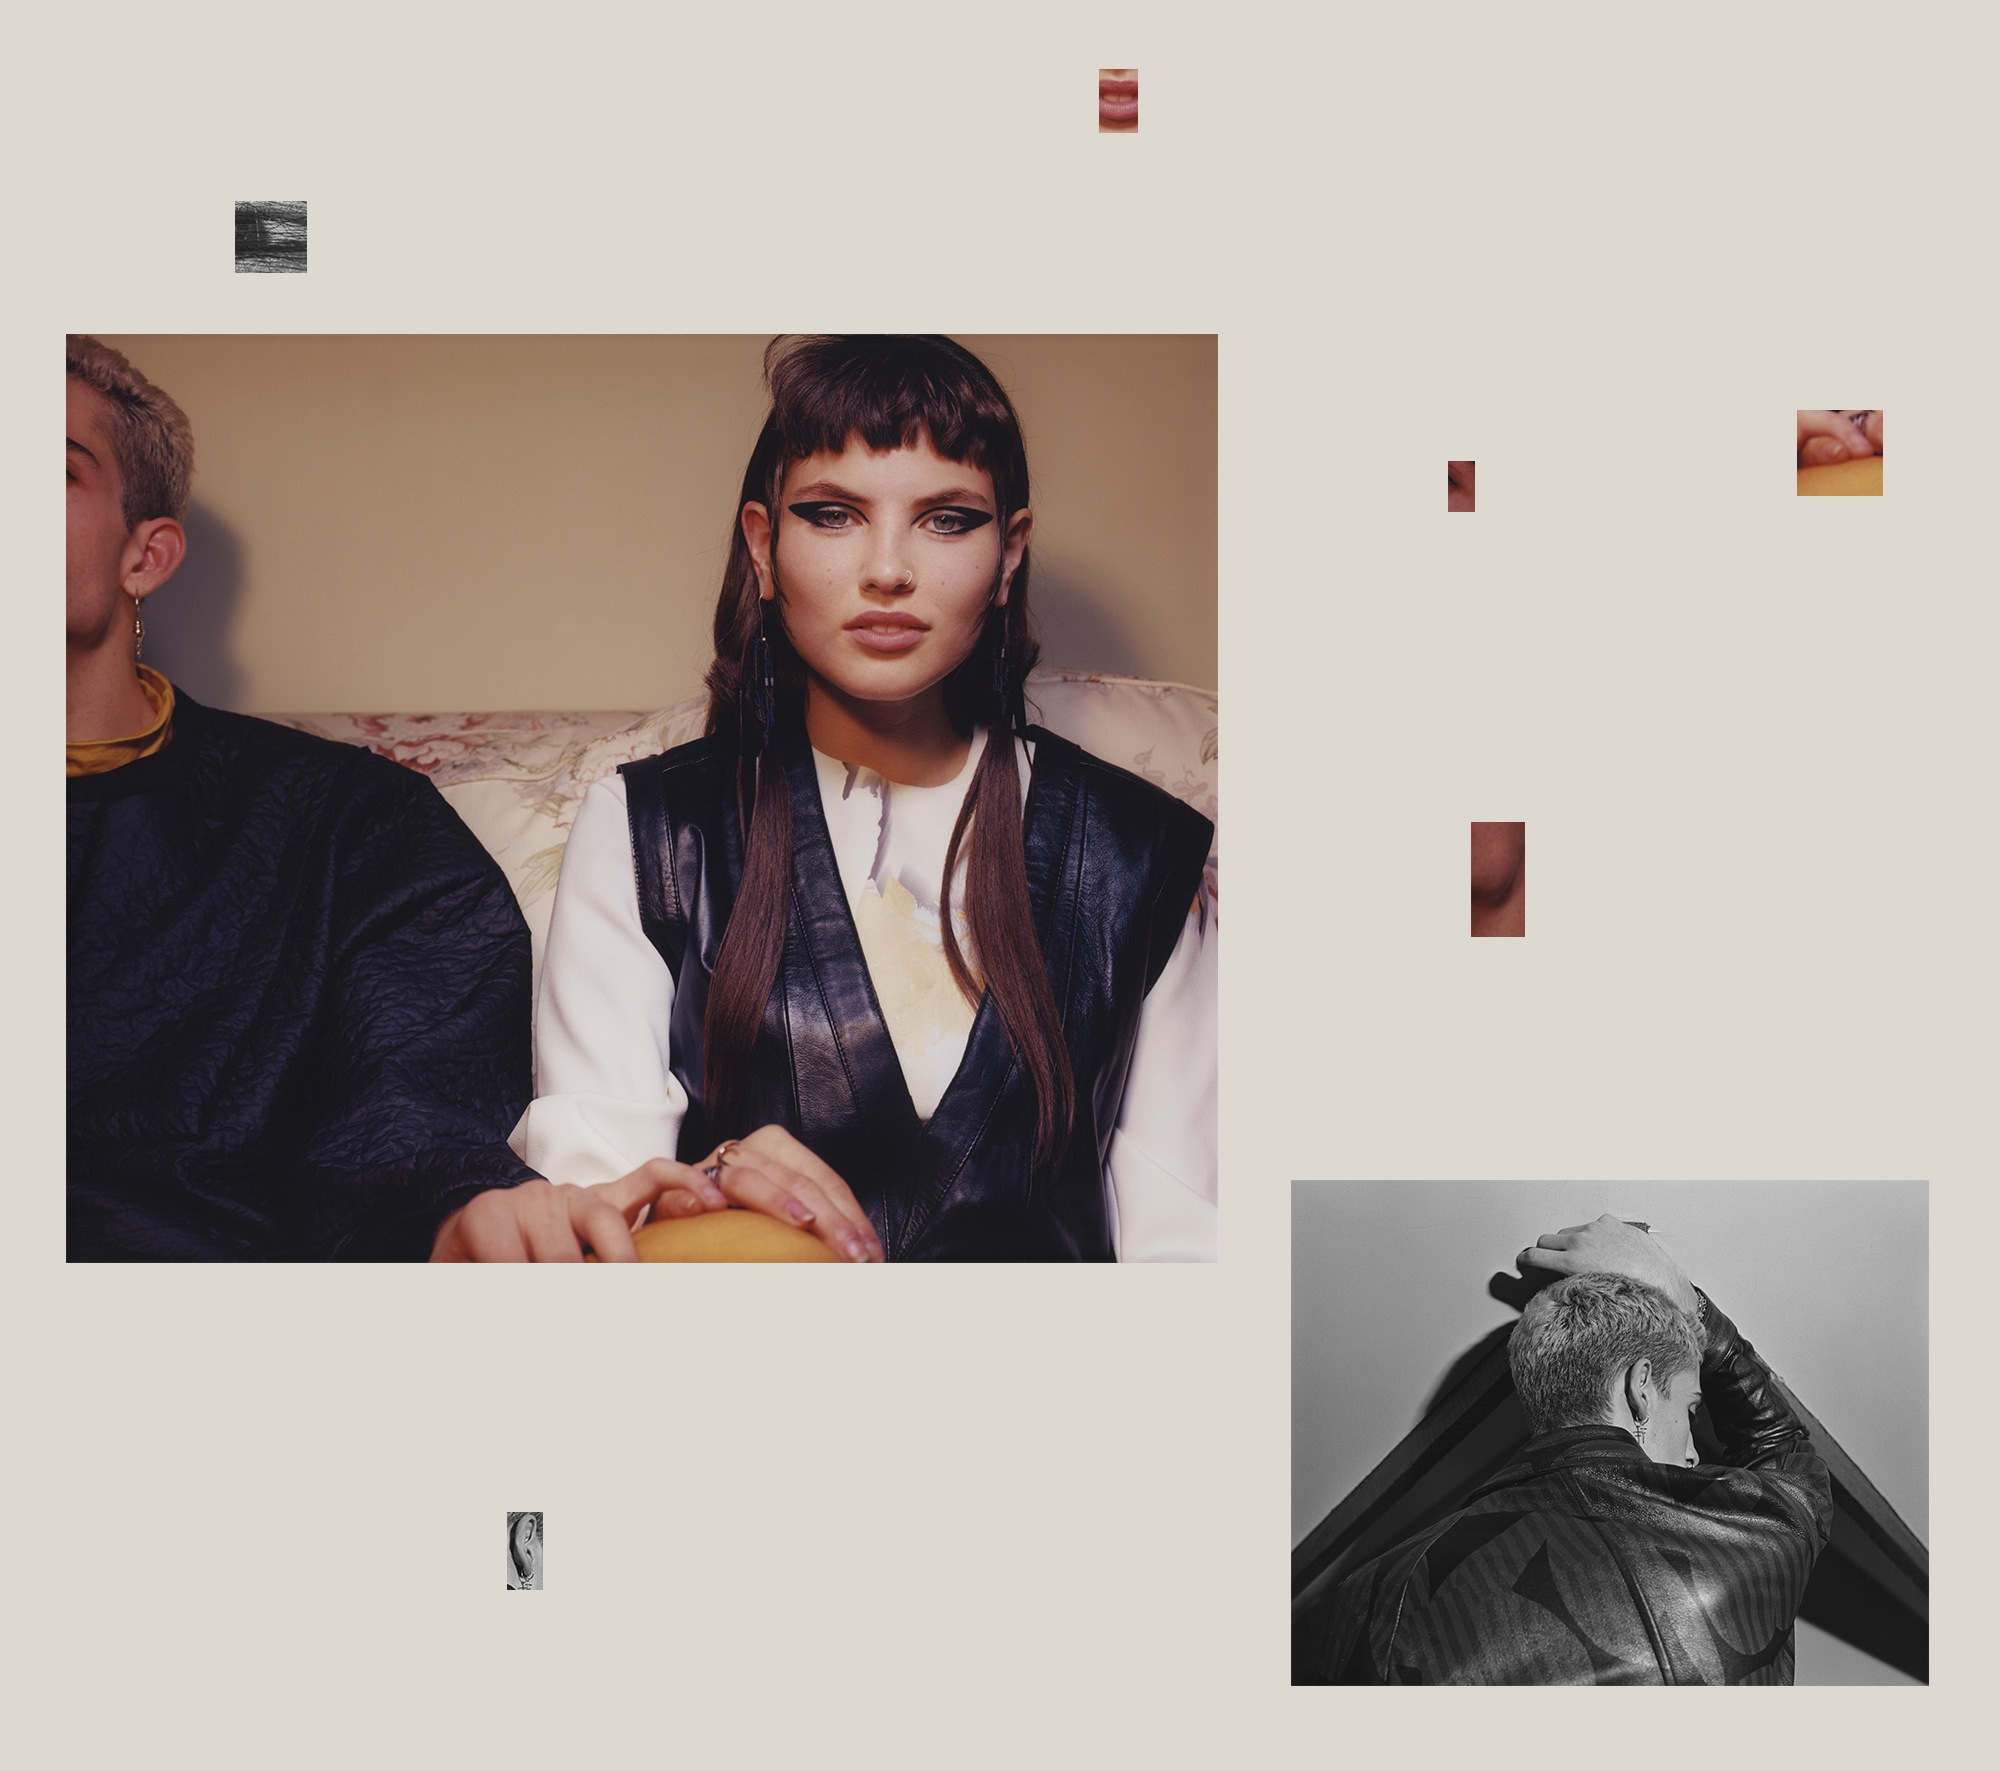 Top Left:Sinclair wears  Top and Jumper   by   Berthold , Earring by   Meadowlark .Angelina wears  Top by   Solace London , Gilet by   Ganni,   Earrings by   Chalayan   and Rings by   Gaelle Khouri . Bottom Right: Sinclair wears    Jacket by   Wooyoungmi .